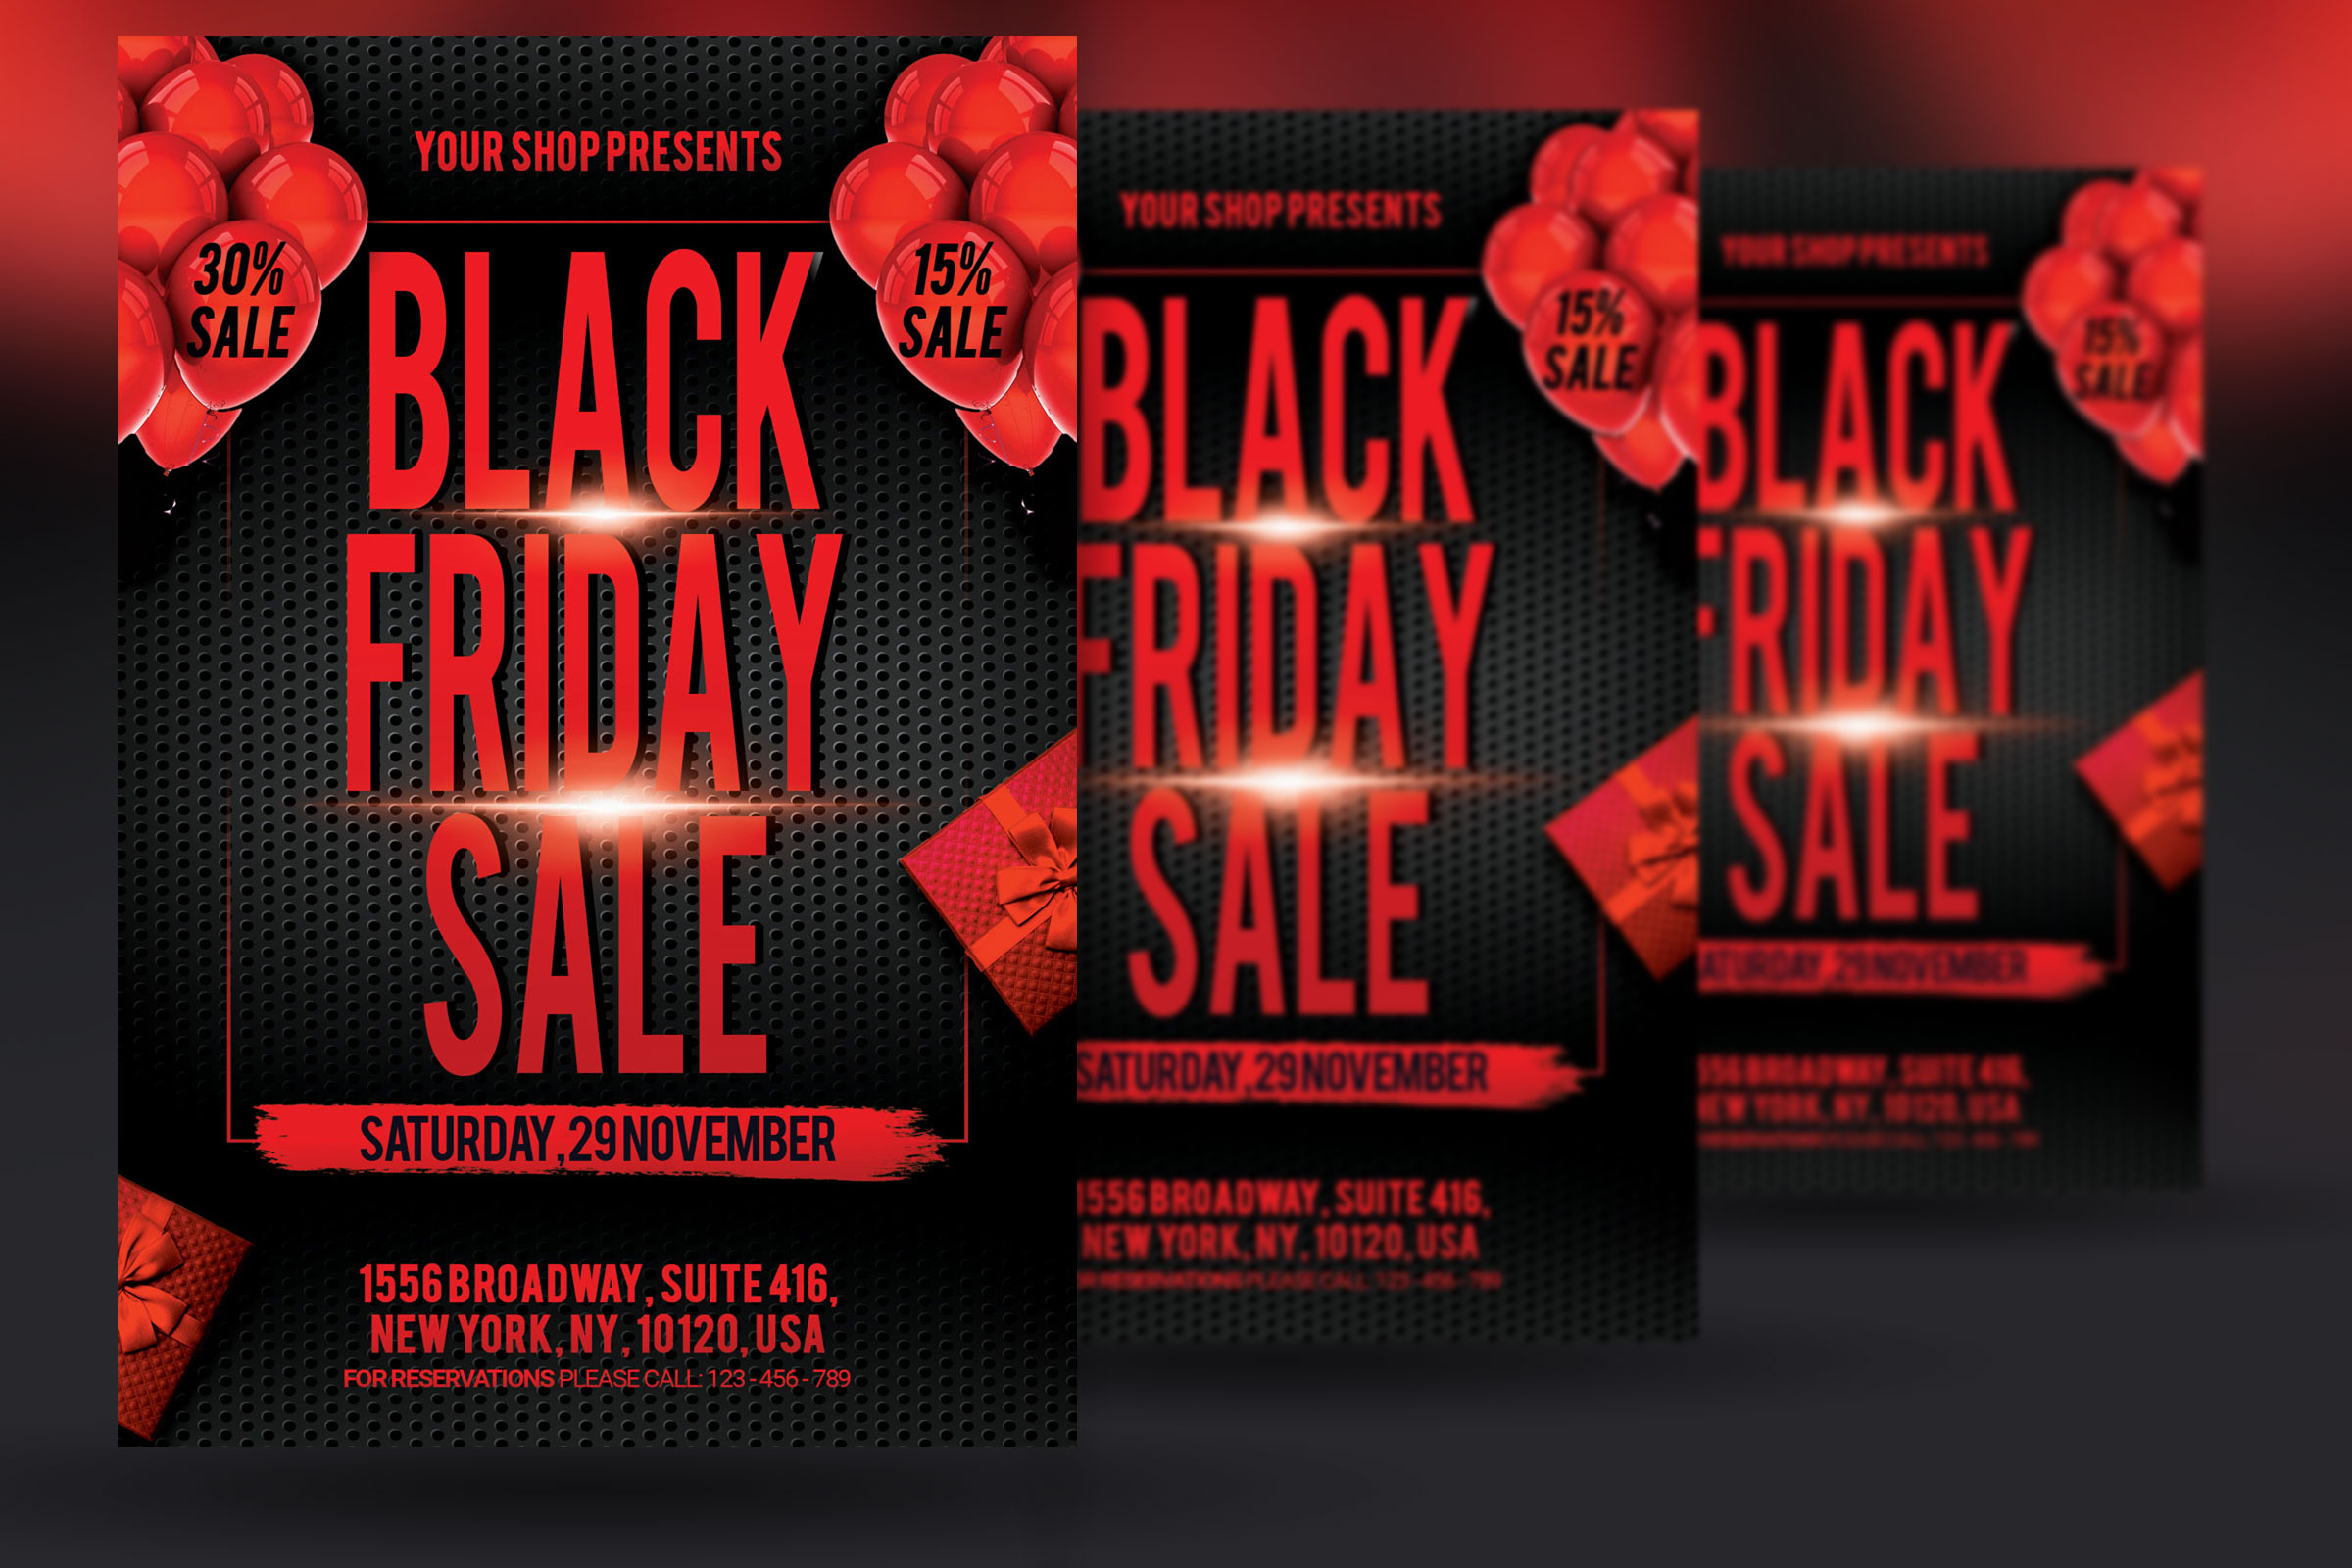 Black Friday Sale Flyers example image 2